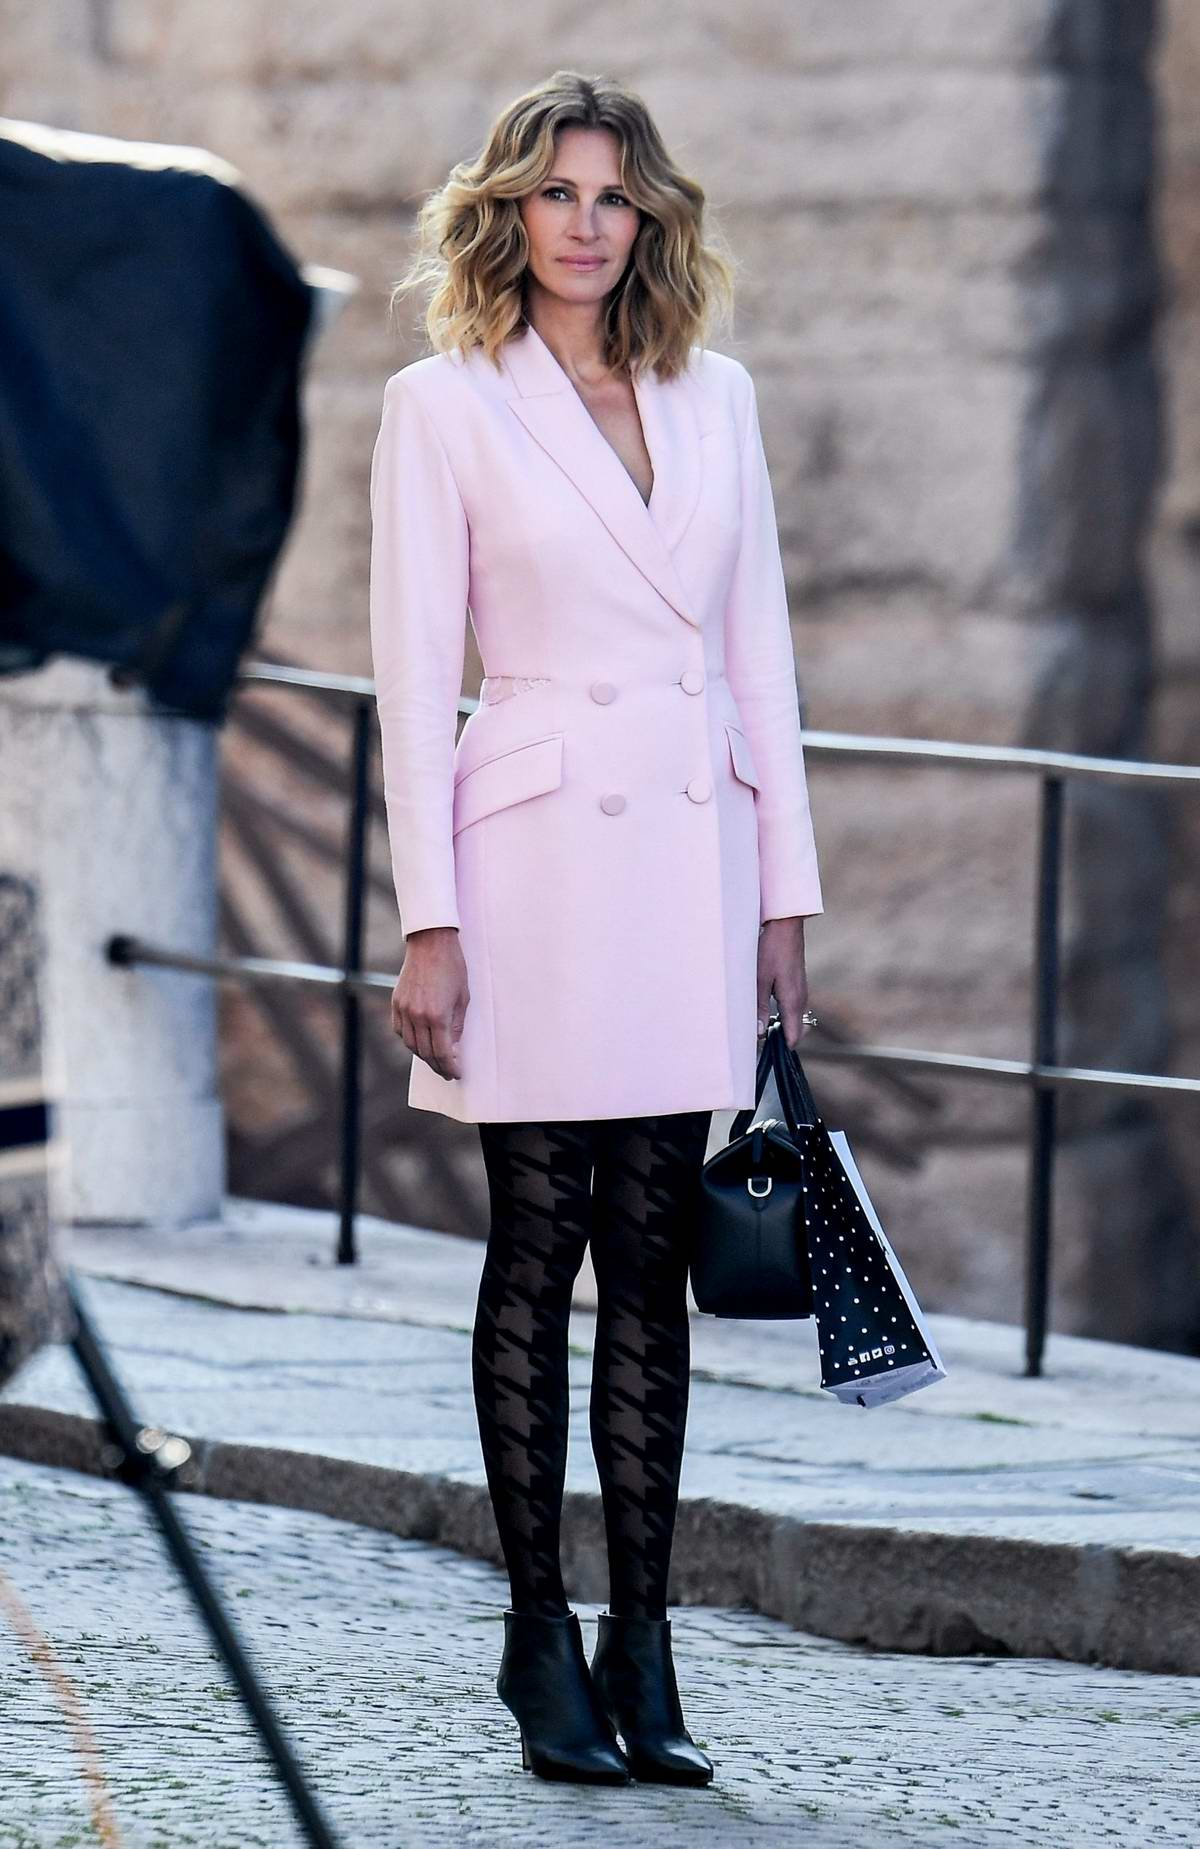 Julia Roberts looks pretty in pink as she is spotted shooting the new advertising campaign for Calzedonia in Verona, Italy